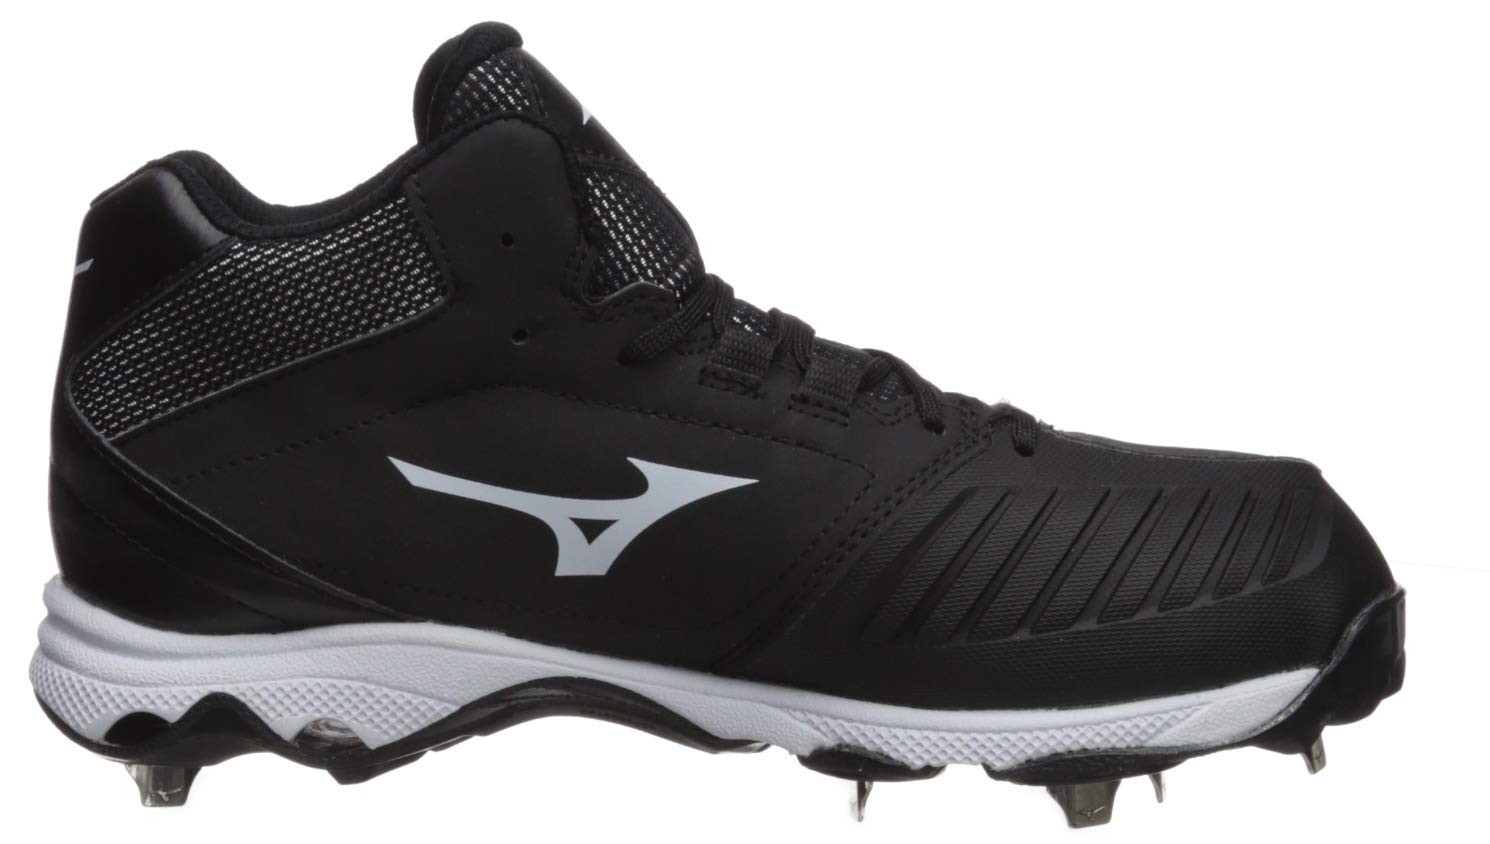 Mizuno Women's 9-Spike Advanced Sweep 4 Mid Metal Softball Cleat Shoe, Black/White 6 B US by Mizuno (Image #6)